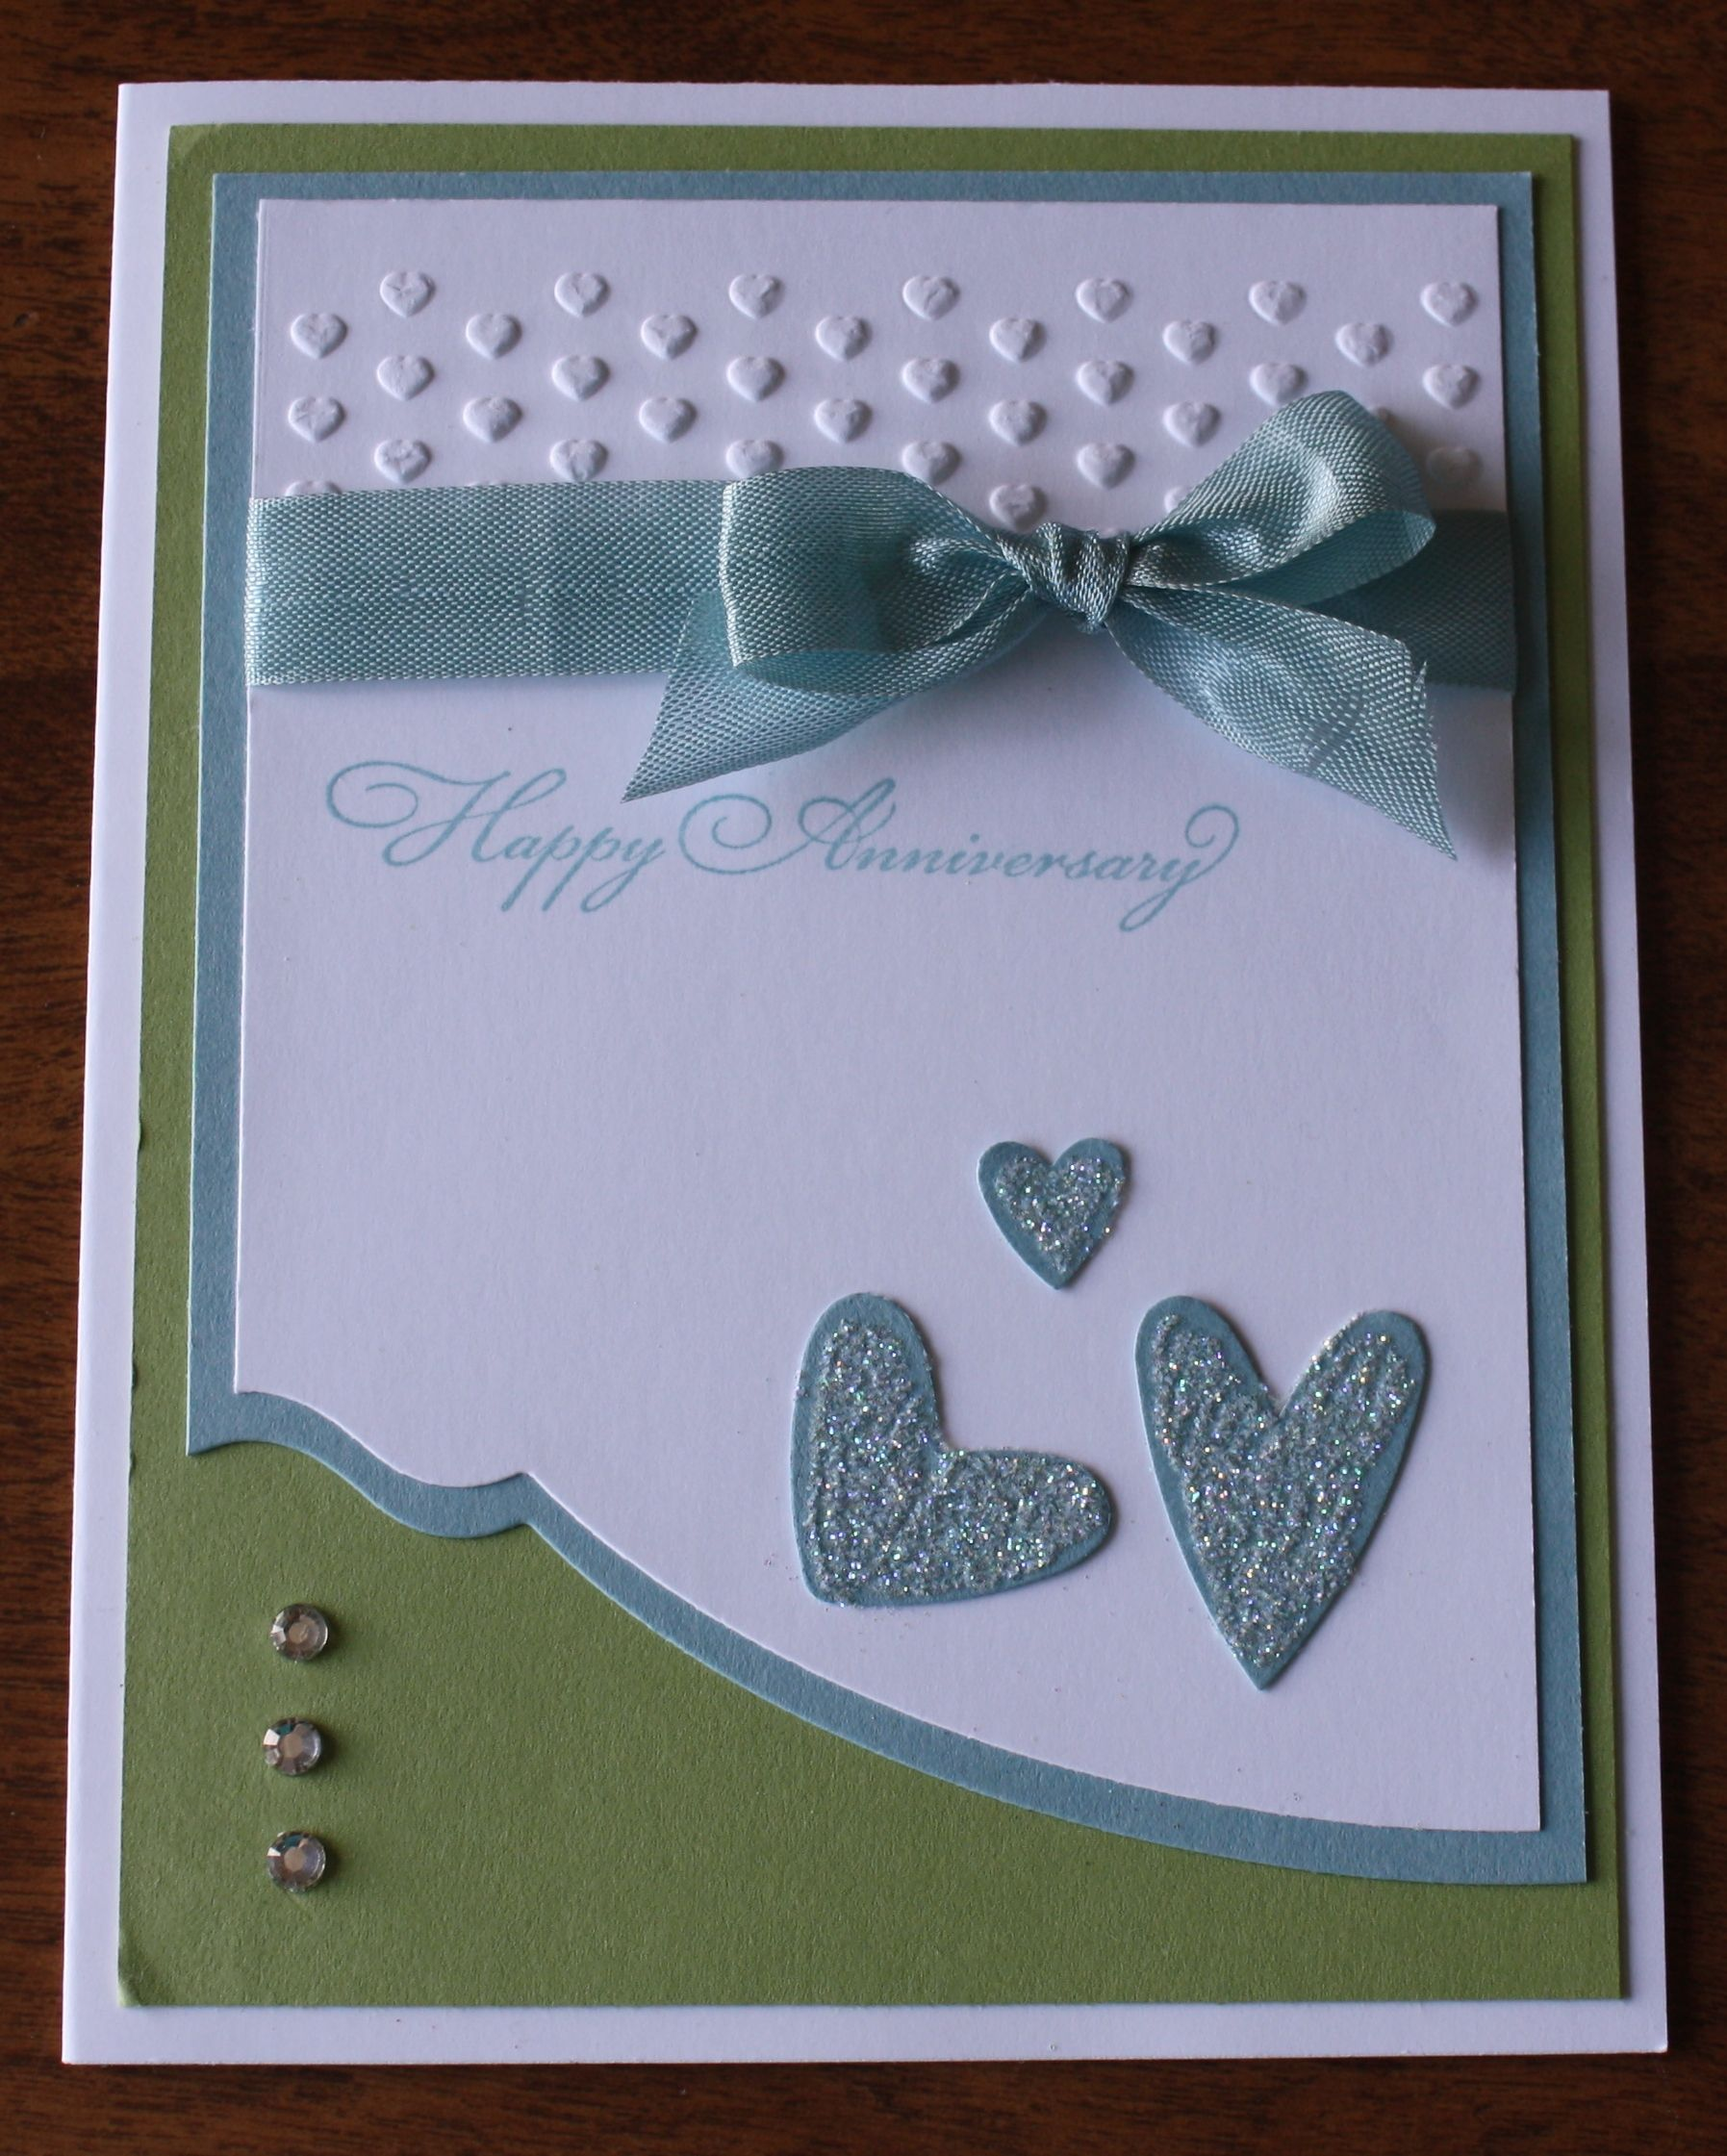 anniversary card using edgelits and hearts embossing